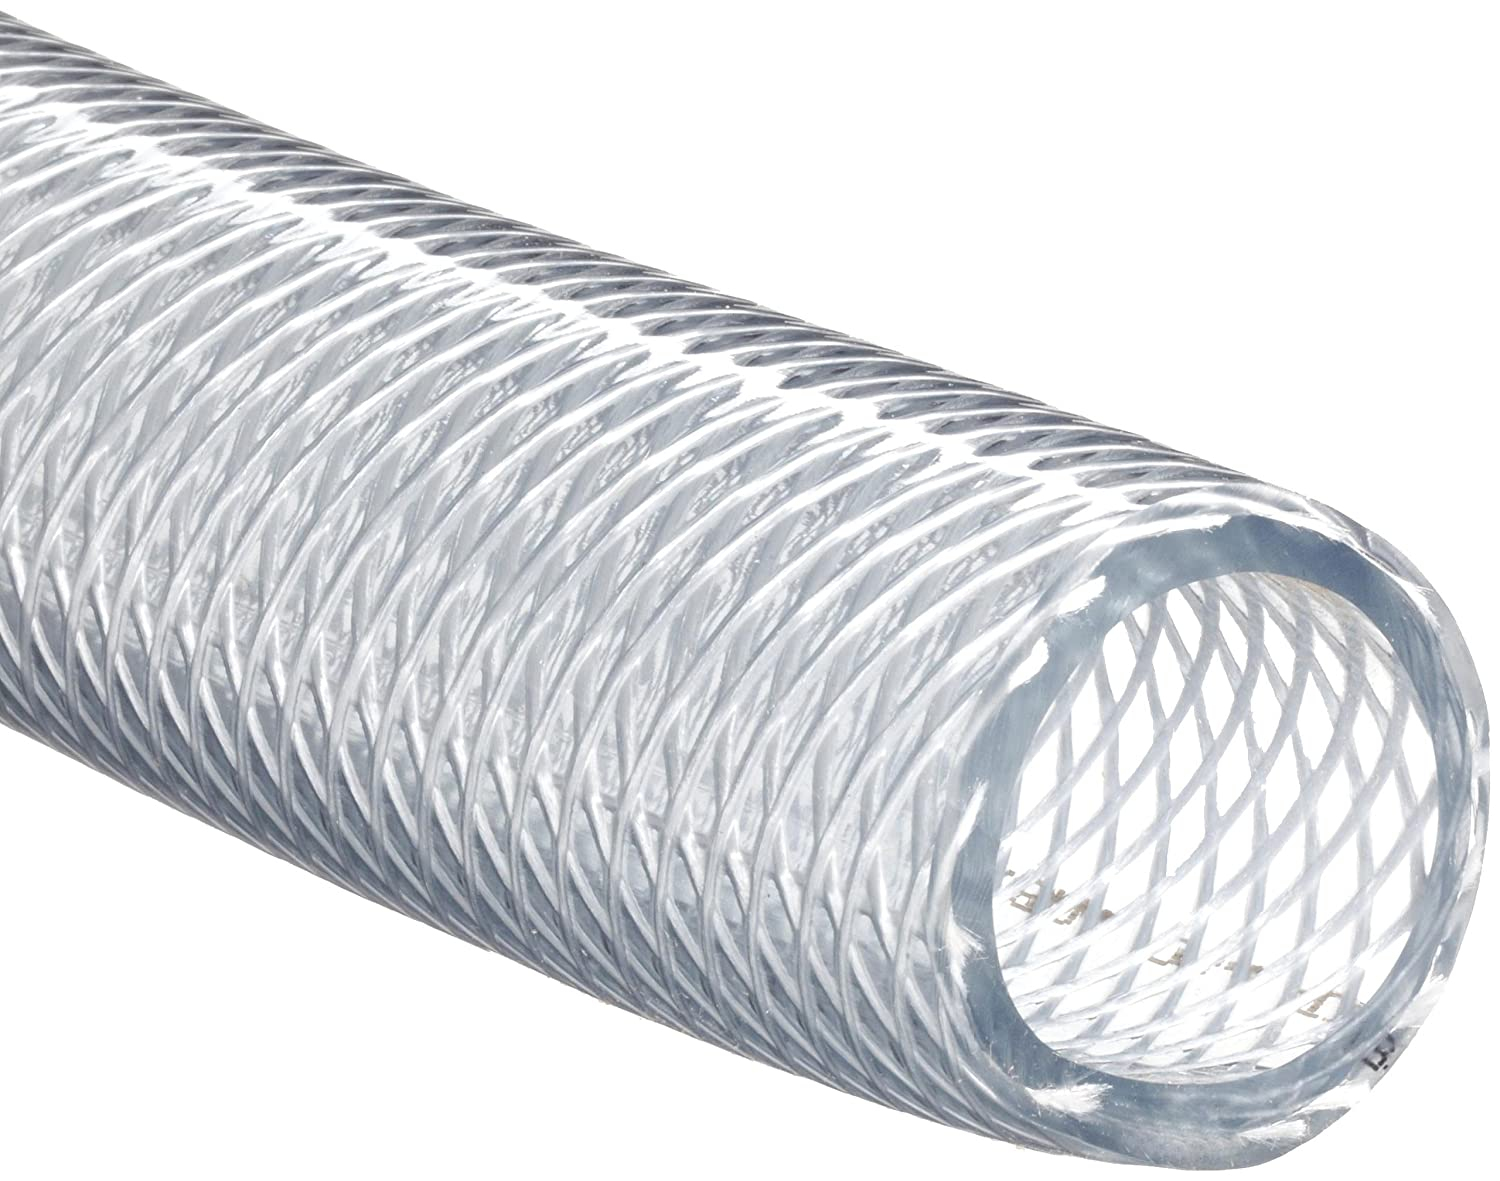 Nalgene 8005 0388 Clear 980 Pvc Braided High Pressure Vinyl Tubing 1 1 2 Id X 1 7 8 Od 50 Length Industrial Plastic Tubing Amazon Com Industrial Scientific